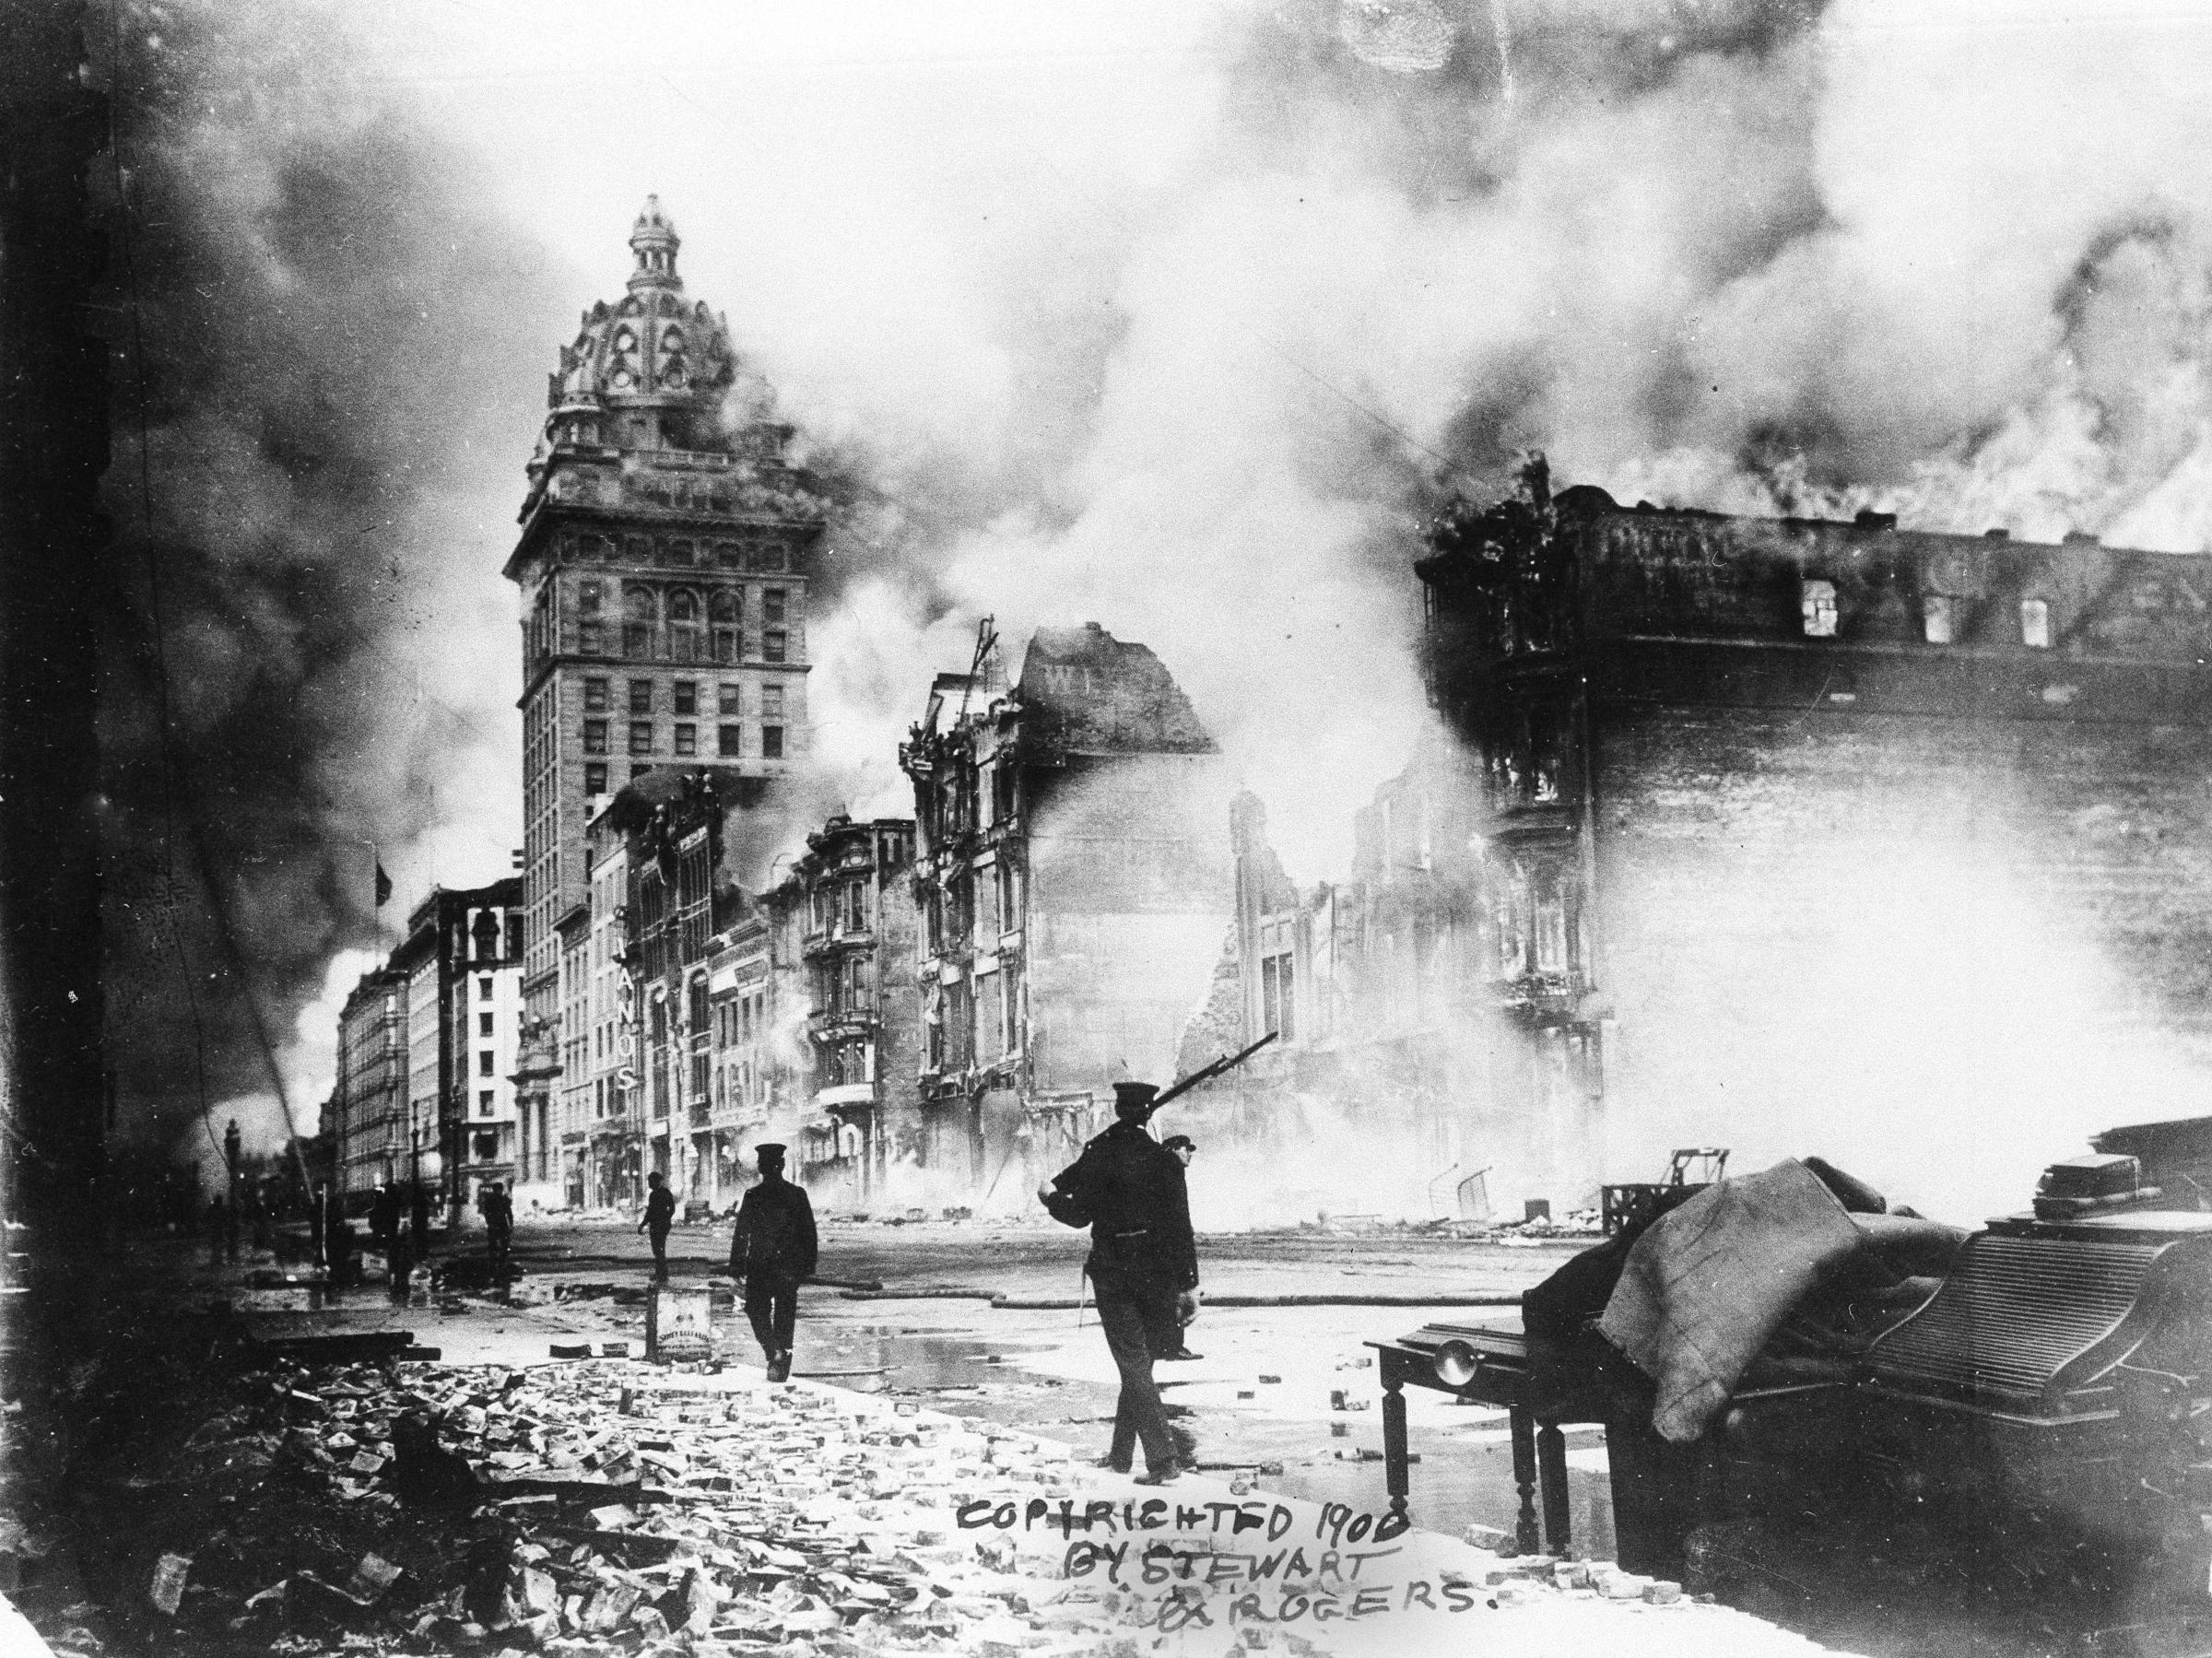 a report on the san francisco earthquake of 1906 1906 san francisco earthquake | find out what happened there in 1906, the city of san francisco, california, suffered one of the most devastating earthquakes ever to hit a major metropolitan area the tremor and resulting fires destroyed much of the city.